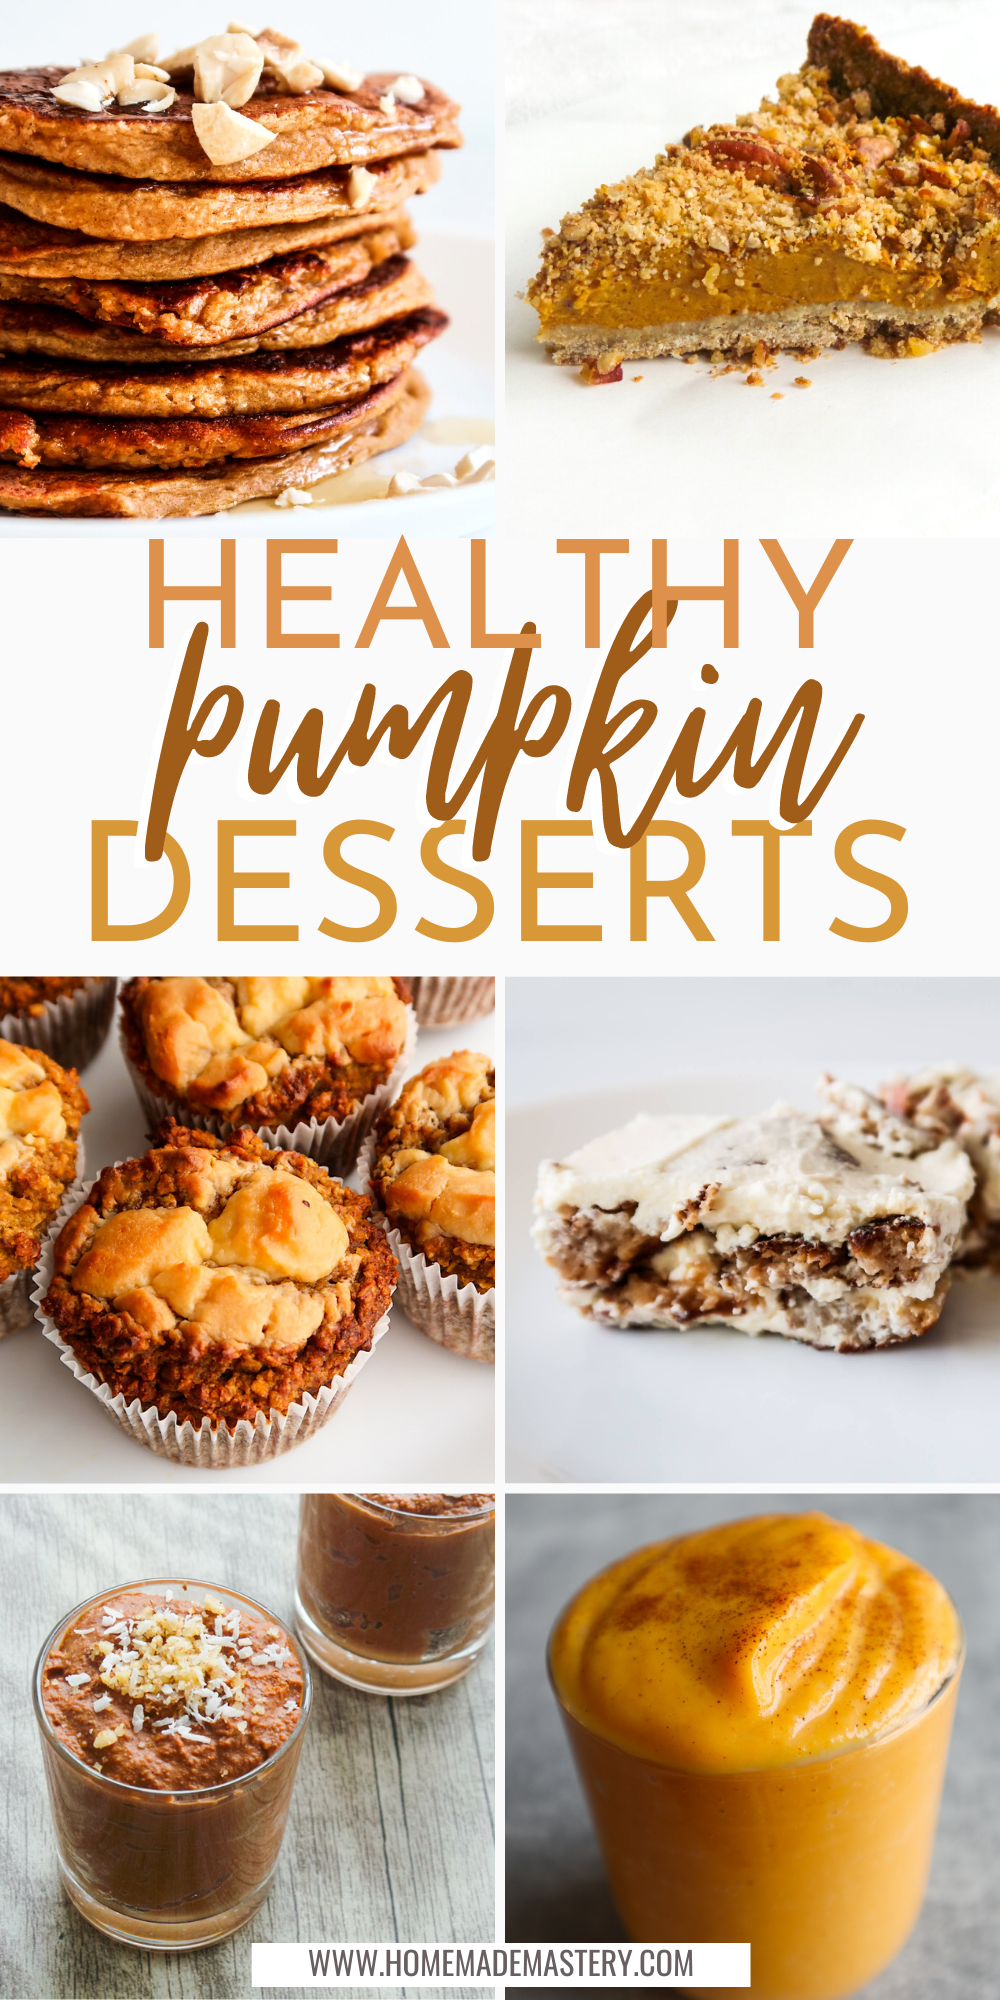 This is a collection of delicious easy and healthy pumpkin dessert recipes that anyone can make! This pumpkin recipe roundup includes oatmeal pumpkin pancakes, pumpkin muffins, healthy vegan pumpkin pie recipe, pumpkin pie bars and more!